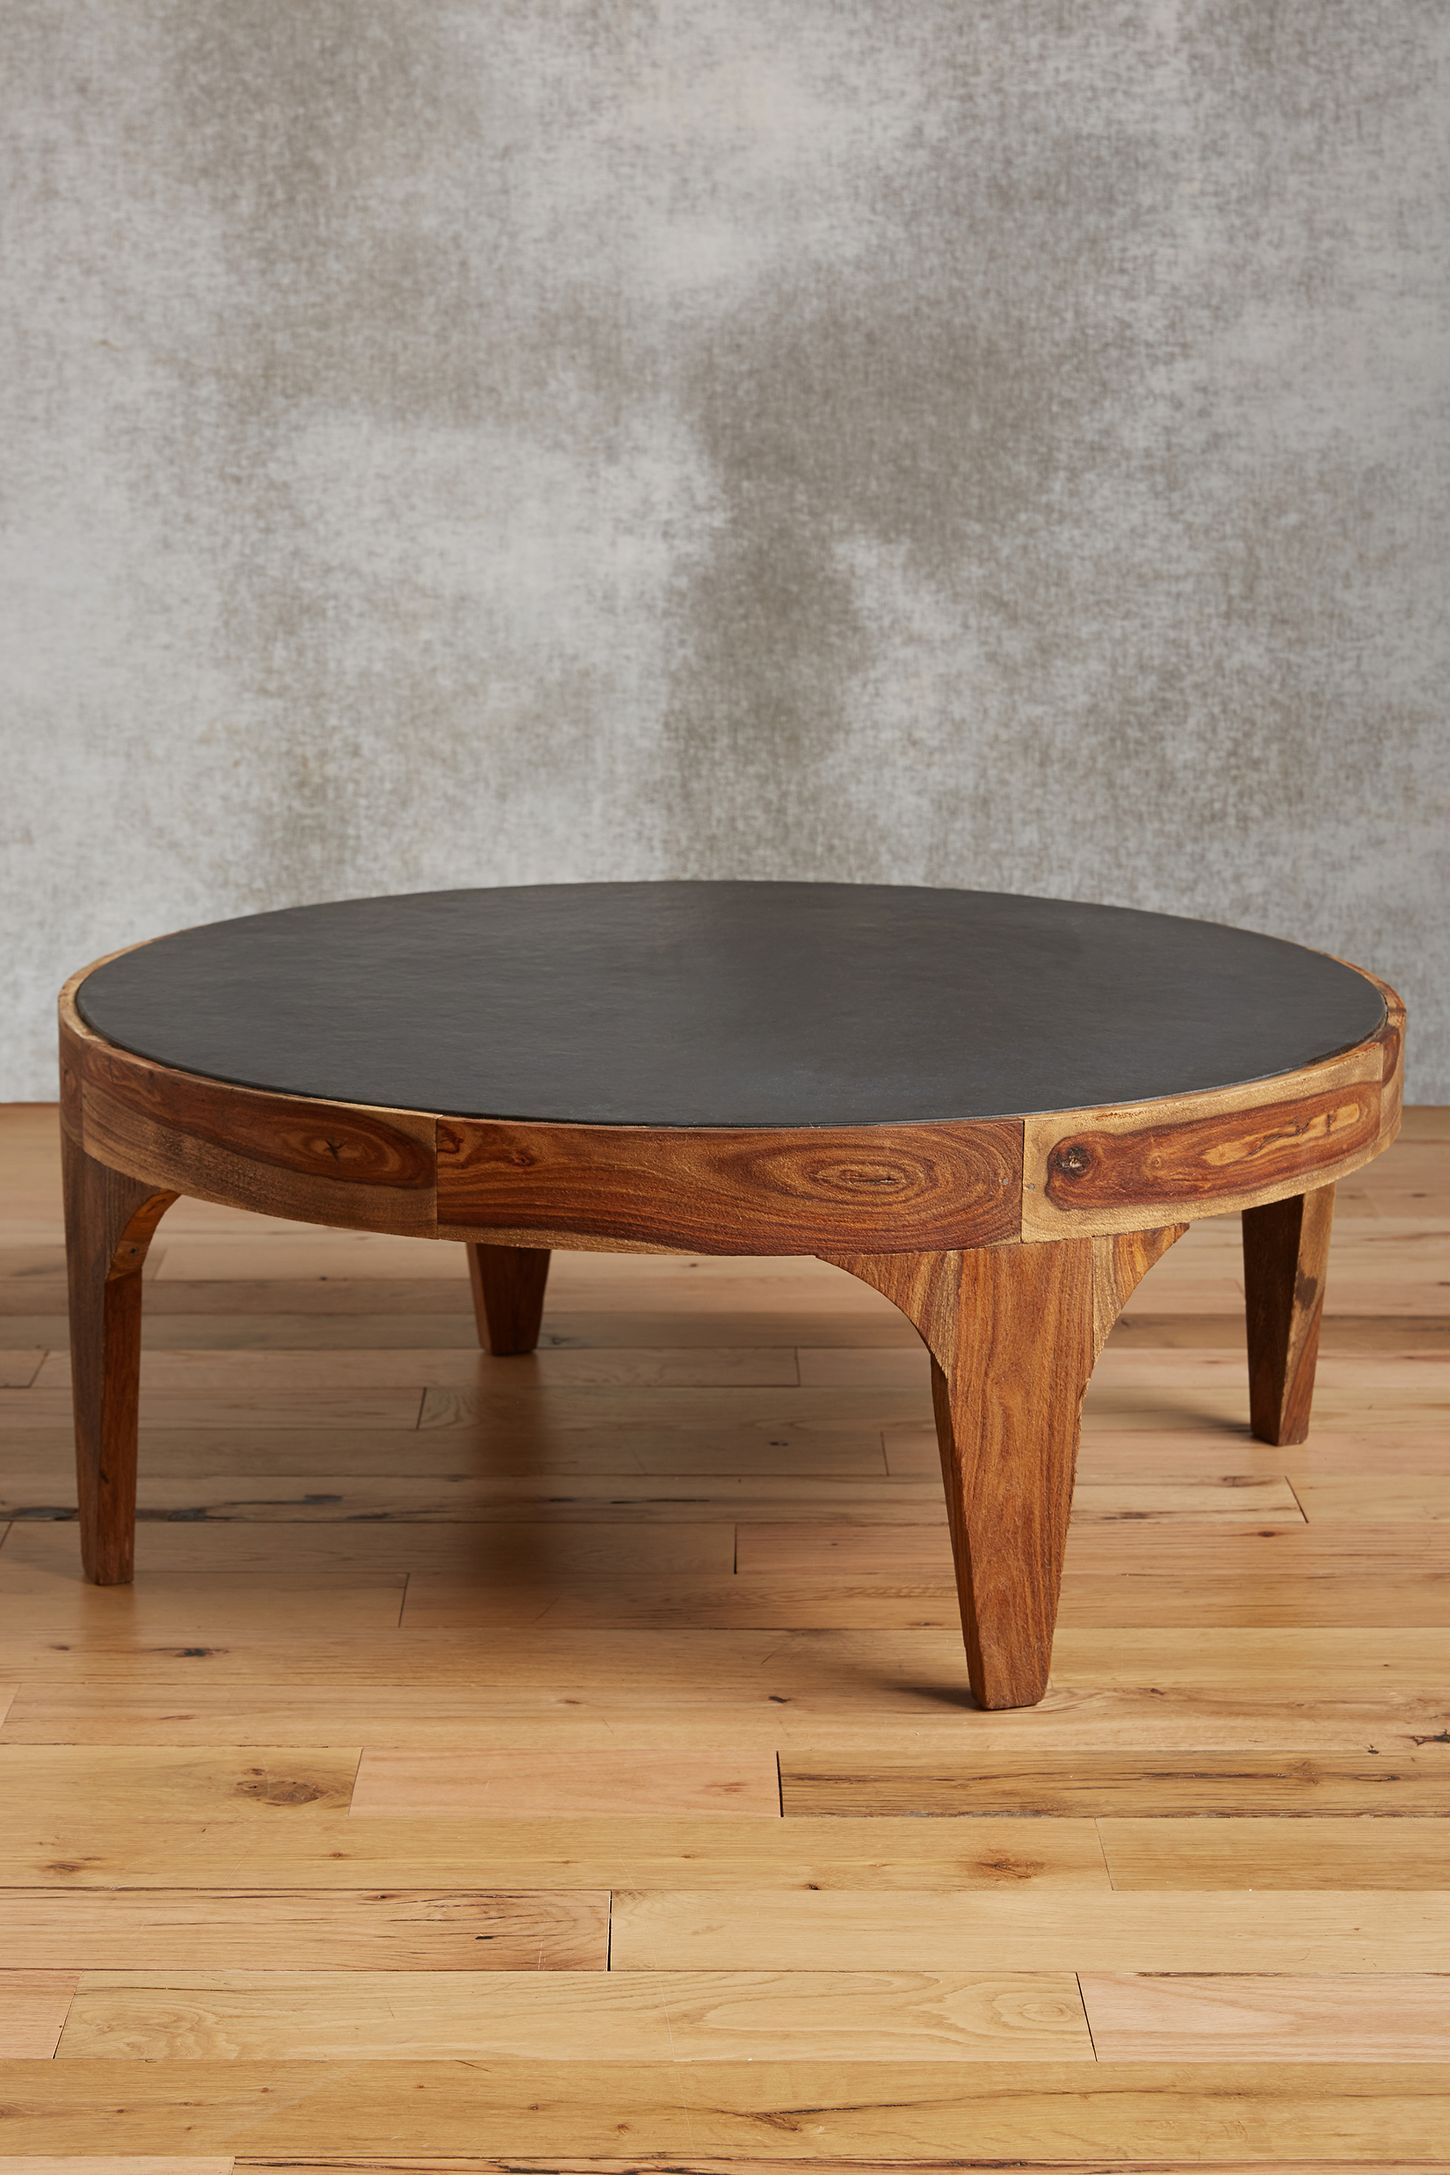 Banla Wood Coffee Table